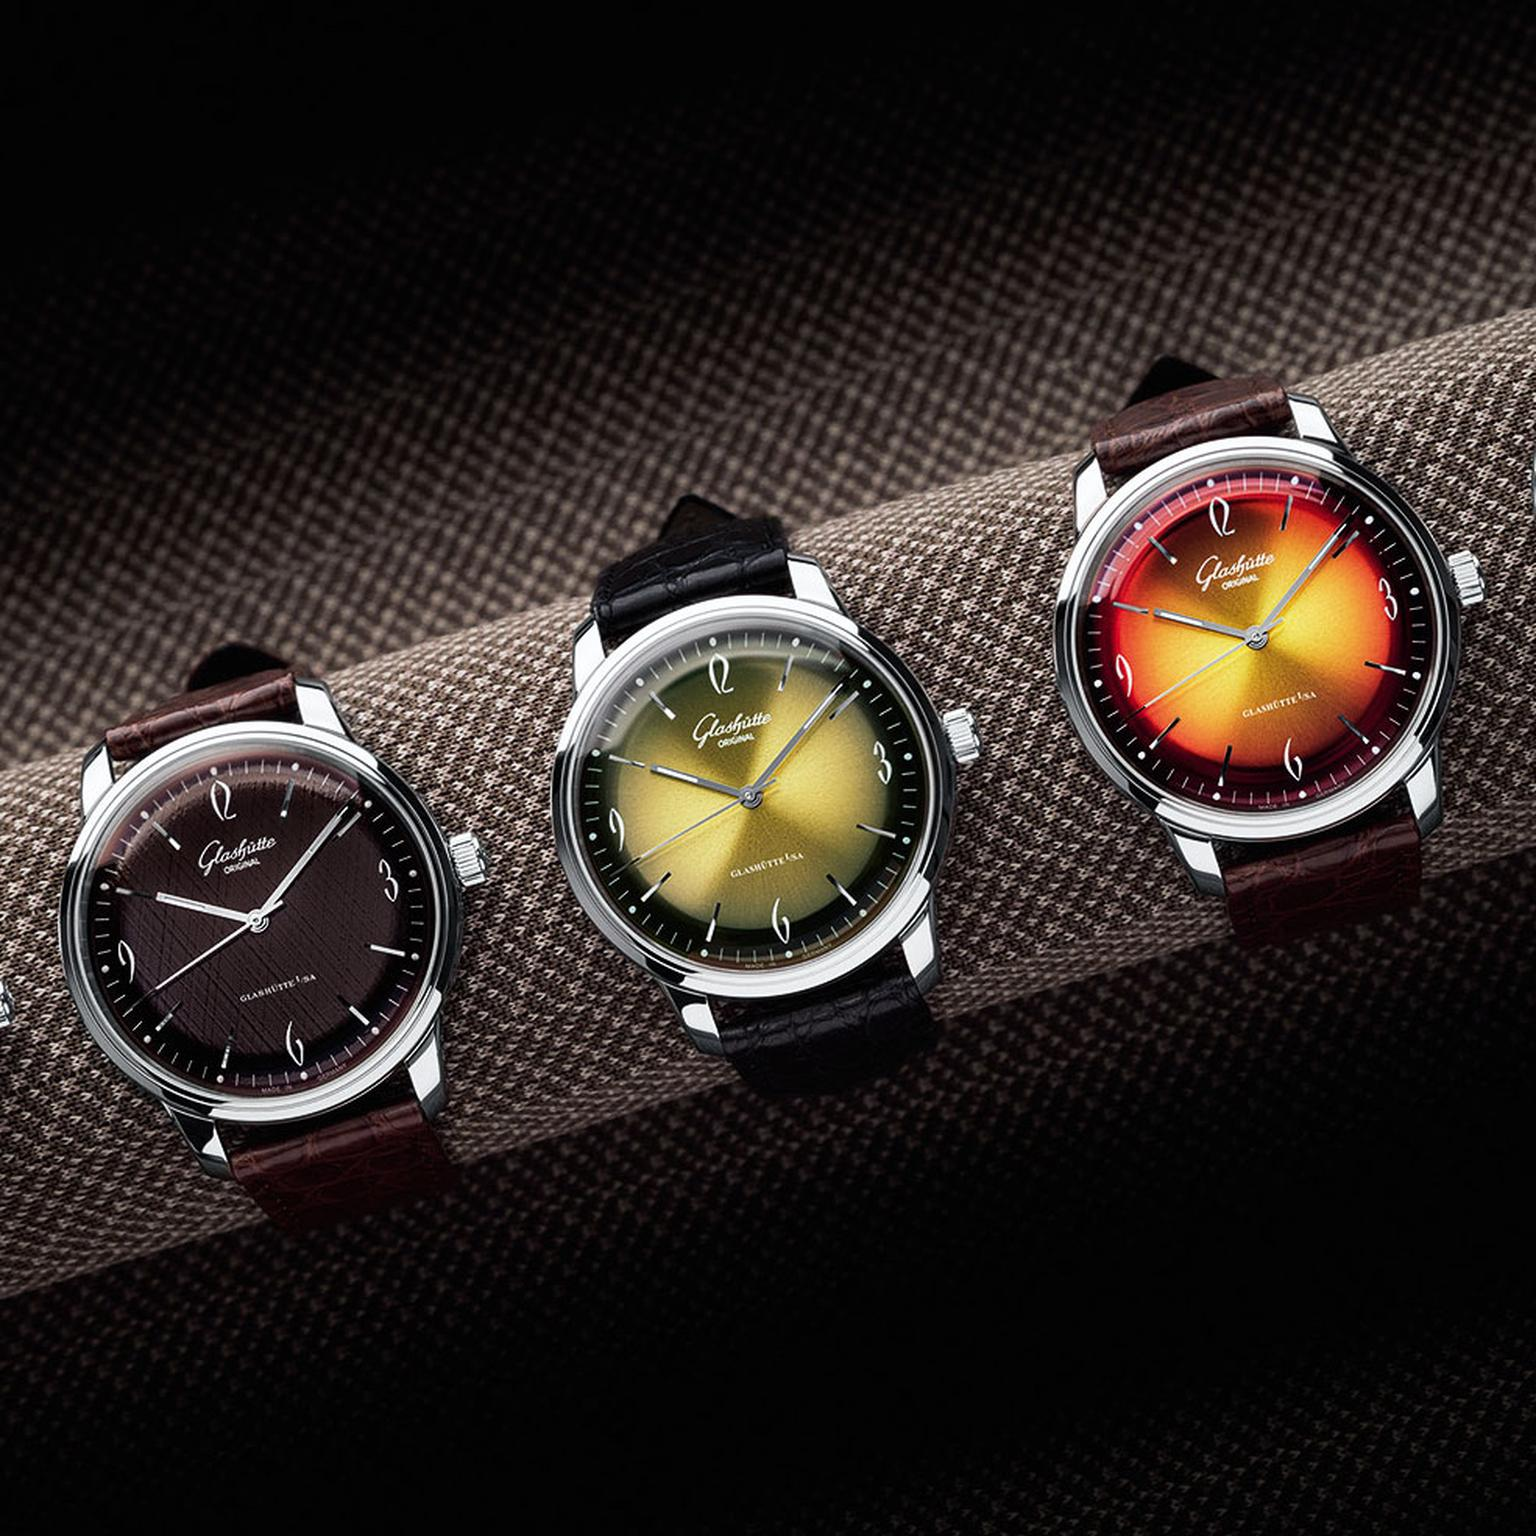 Glashutte Original Sixties Iconic Group watches